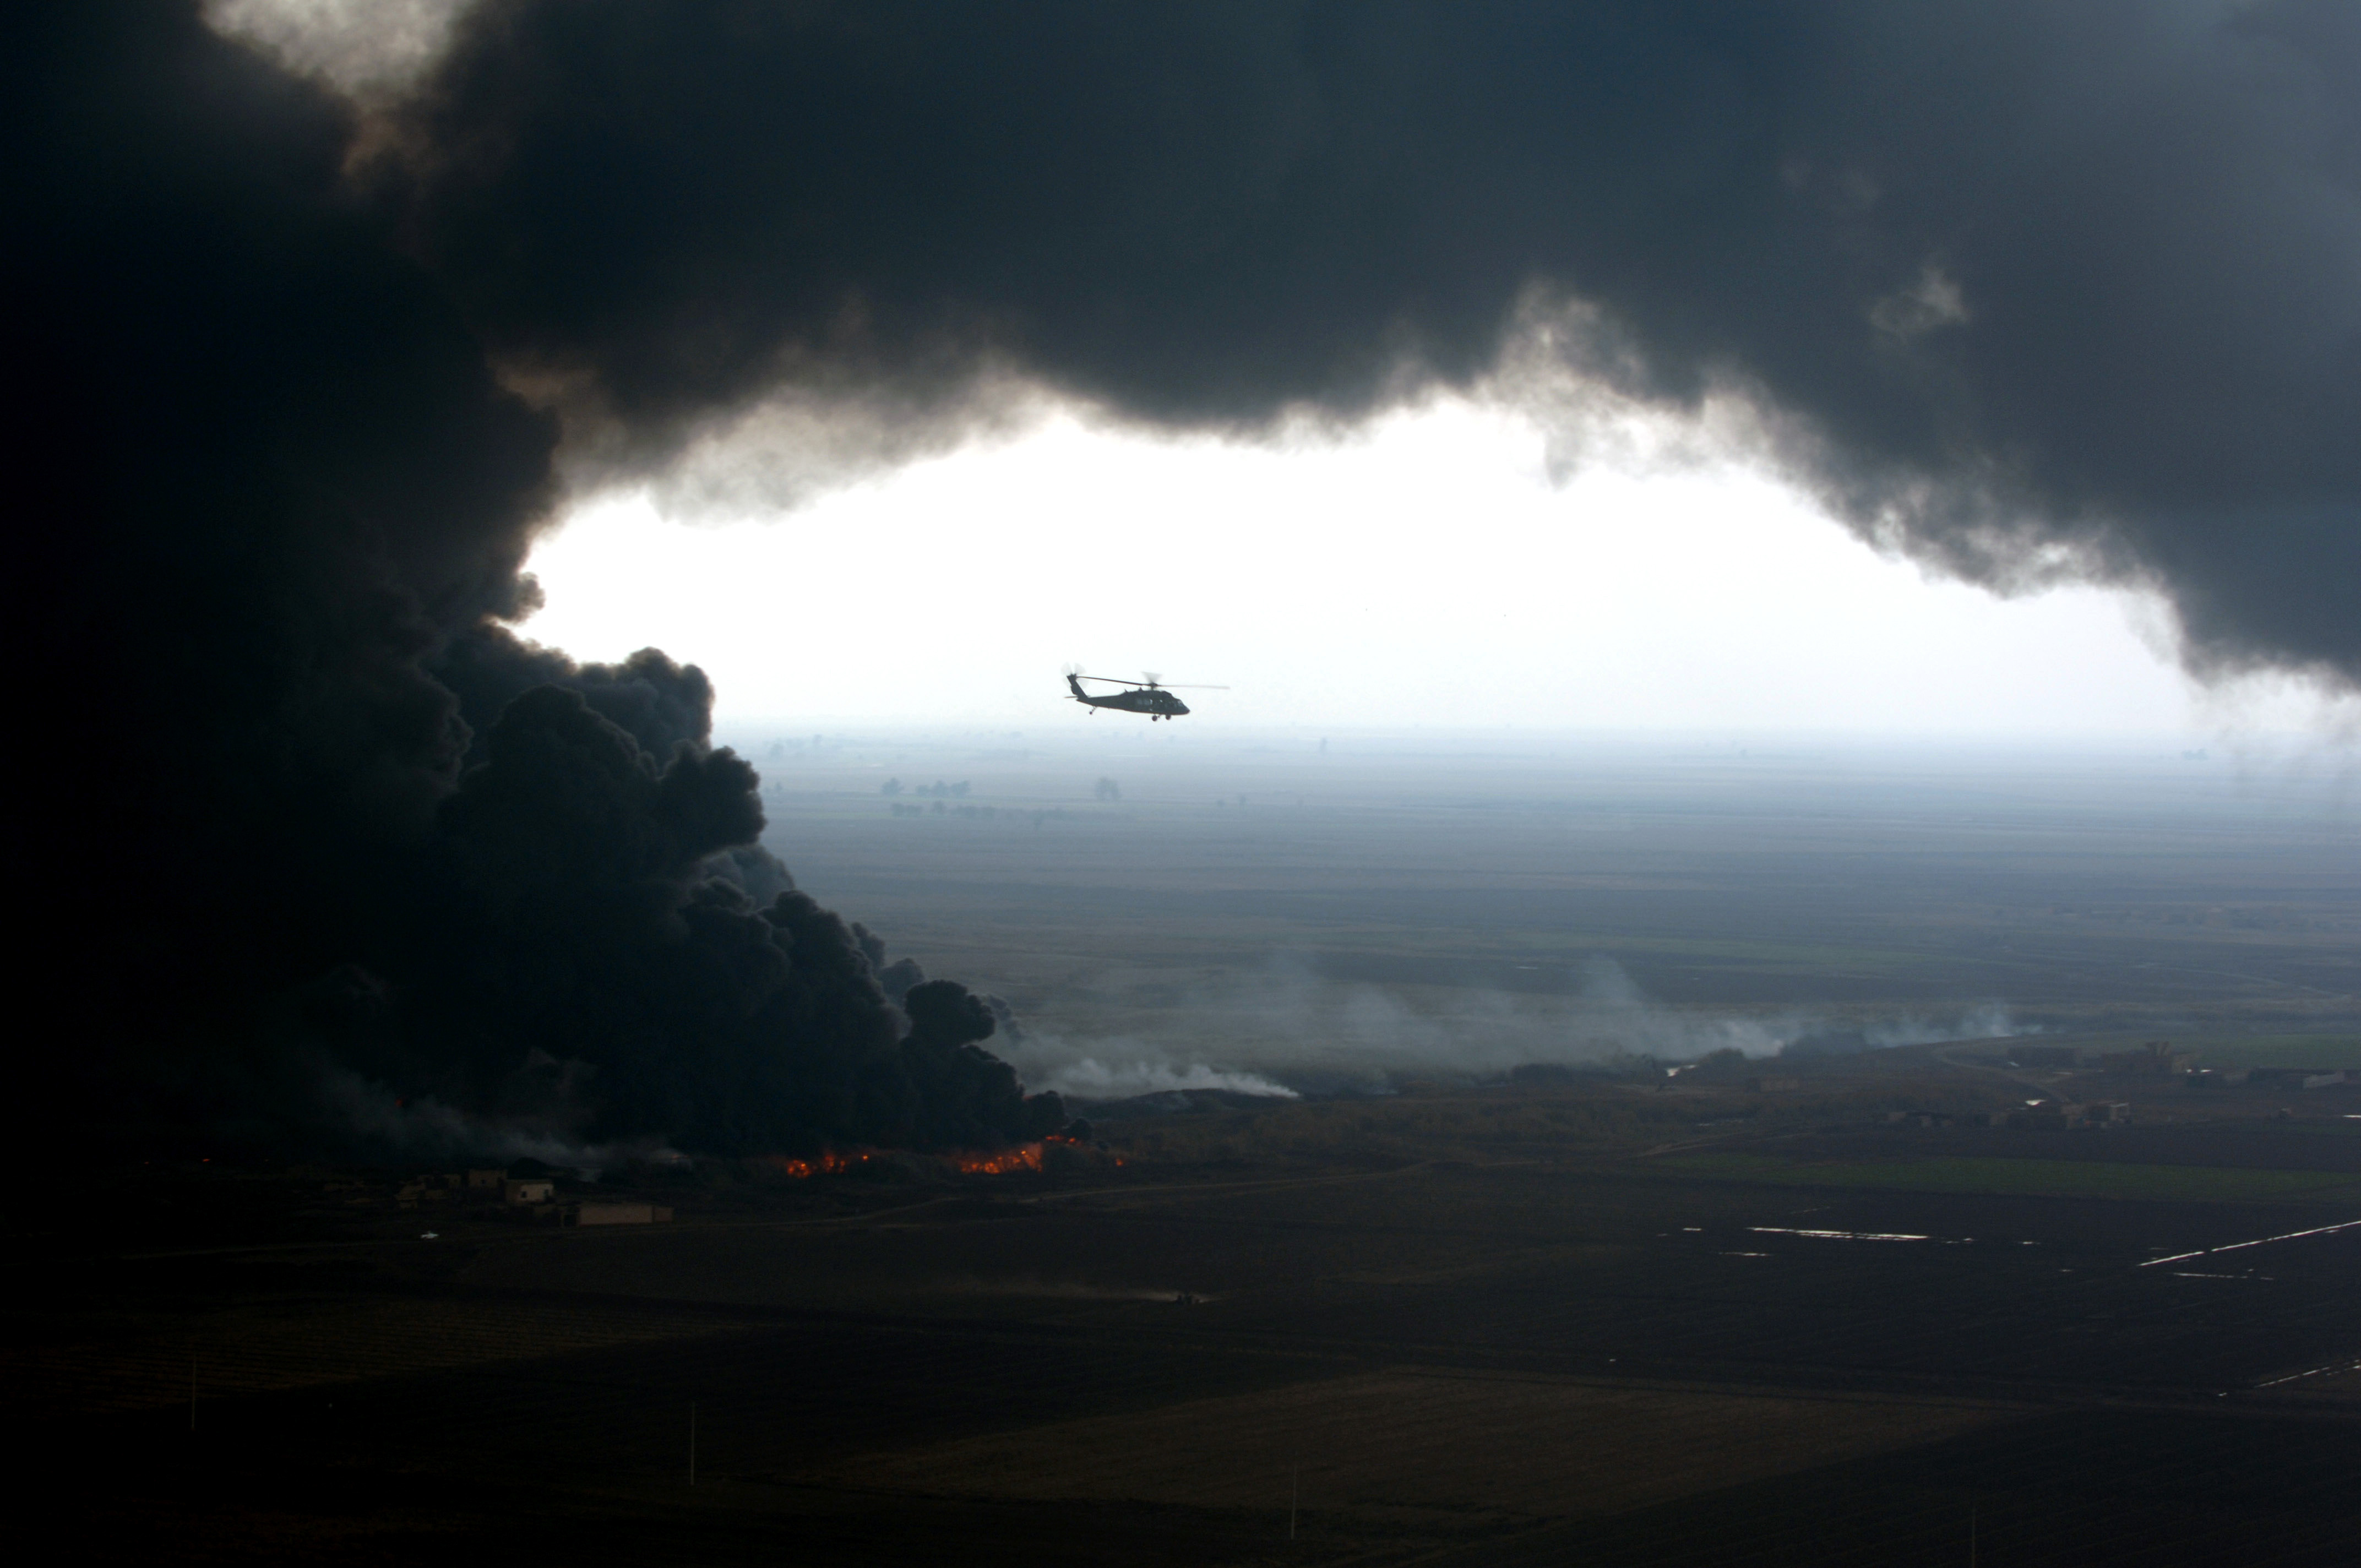 A plume of smoke surrounds a U.S. Army UH-60 Black Hawk helicopter as soldiers of the 101st Airborne Division conduct an aerial assessment of an oil pipeline fire outside Forward Operating Base McHenry, Iraq, on Dec. 27, 2005.  Elements of the 101st Airborne Division are deployed to Iraq from Fort Campbell, Ky.  DoD photo by Spc. Timothy Kingston, U.S. Army.  (Released)